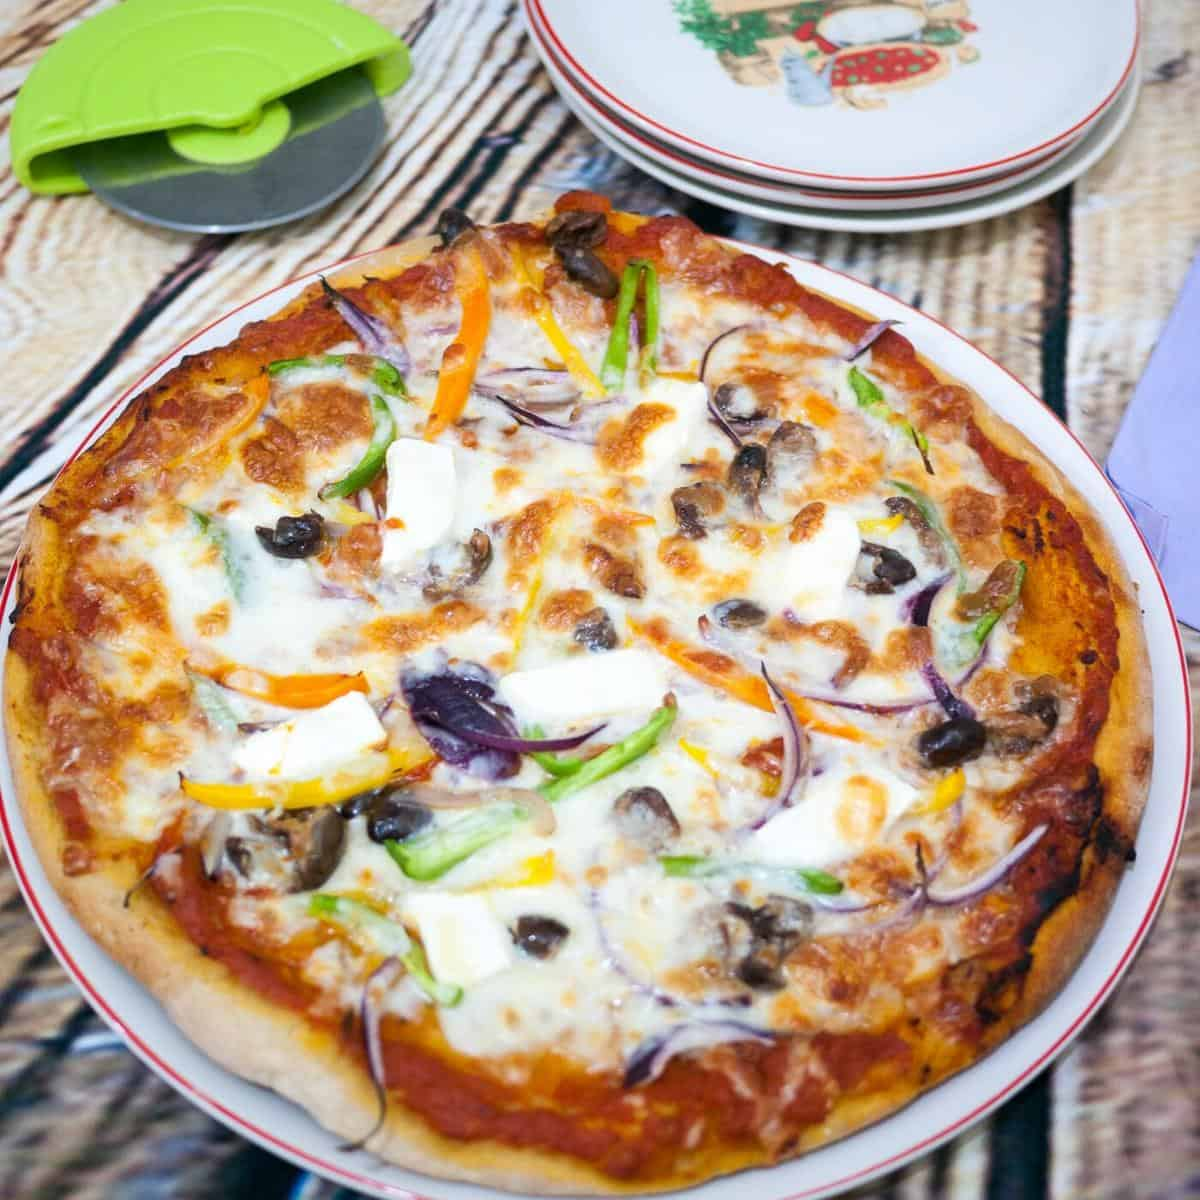 How to Make the Best homemade pizza with these 10 tips